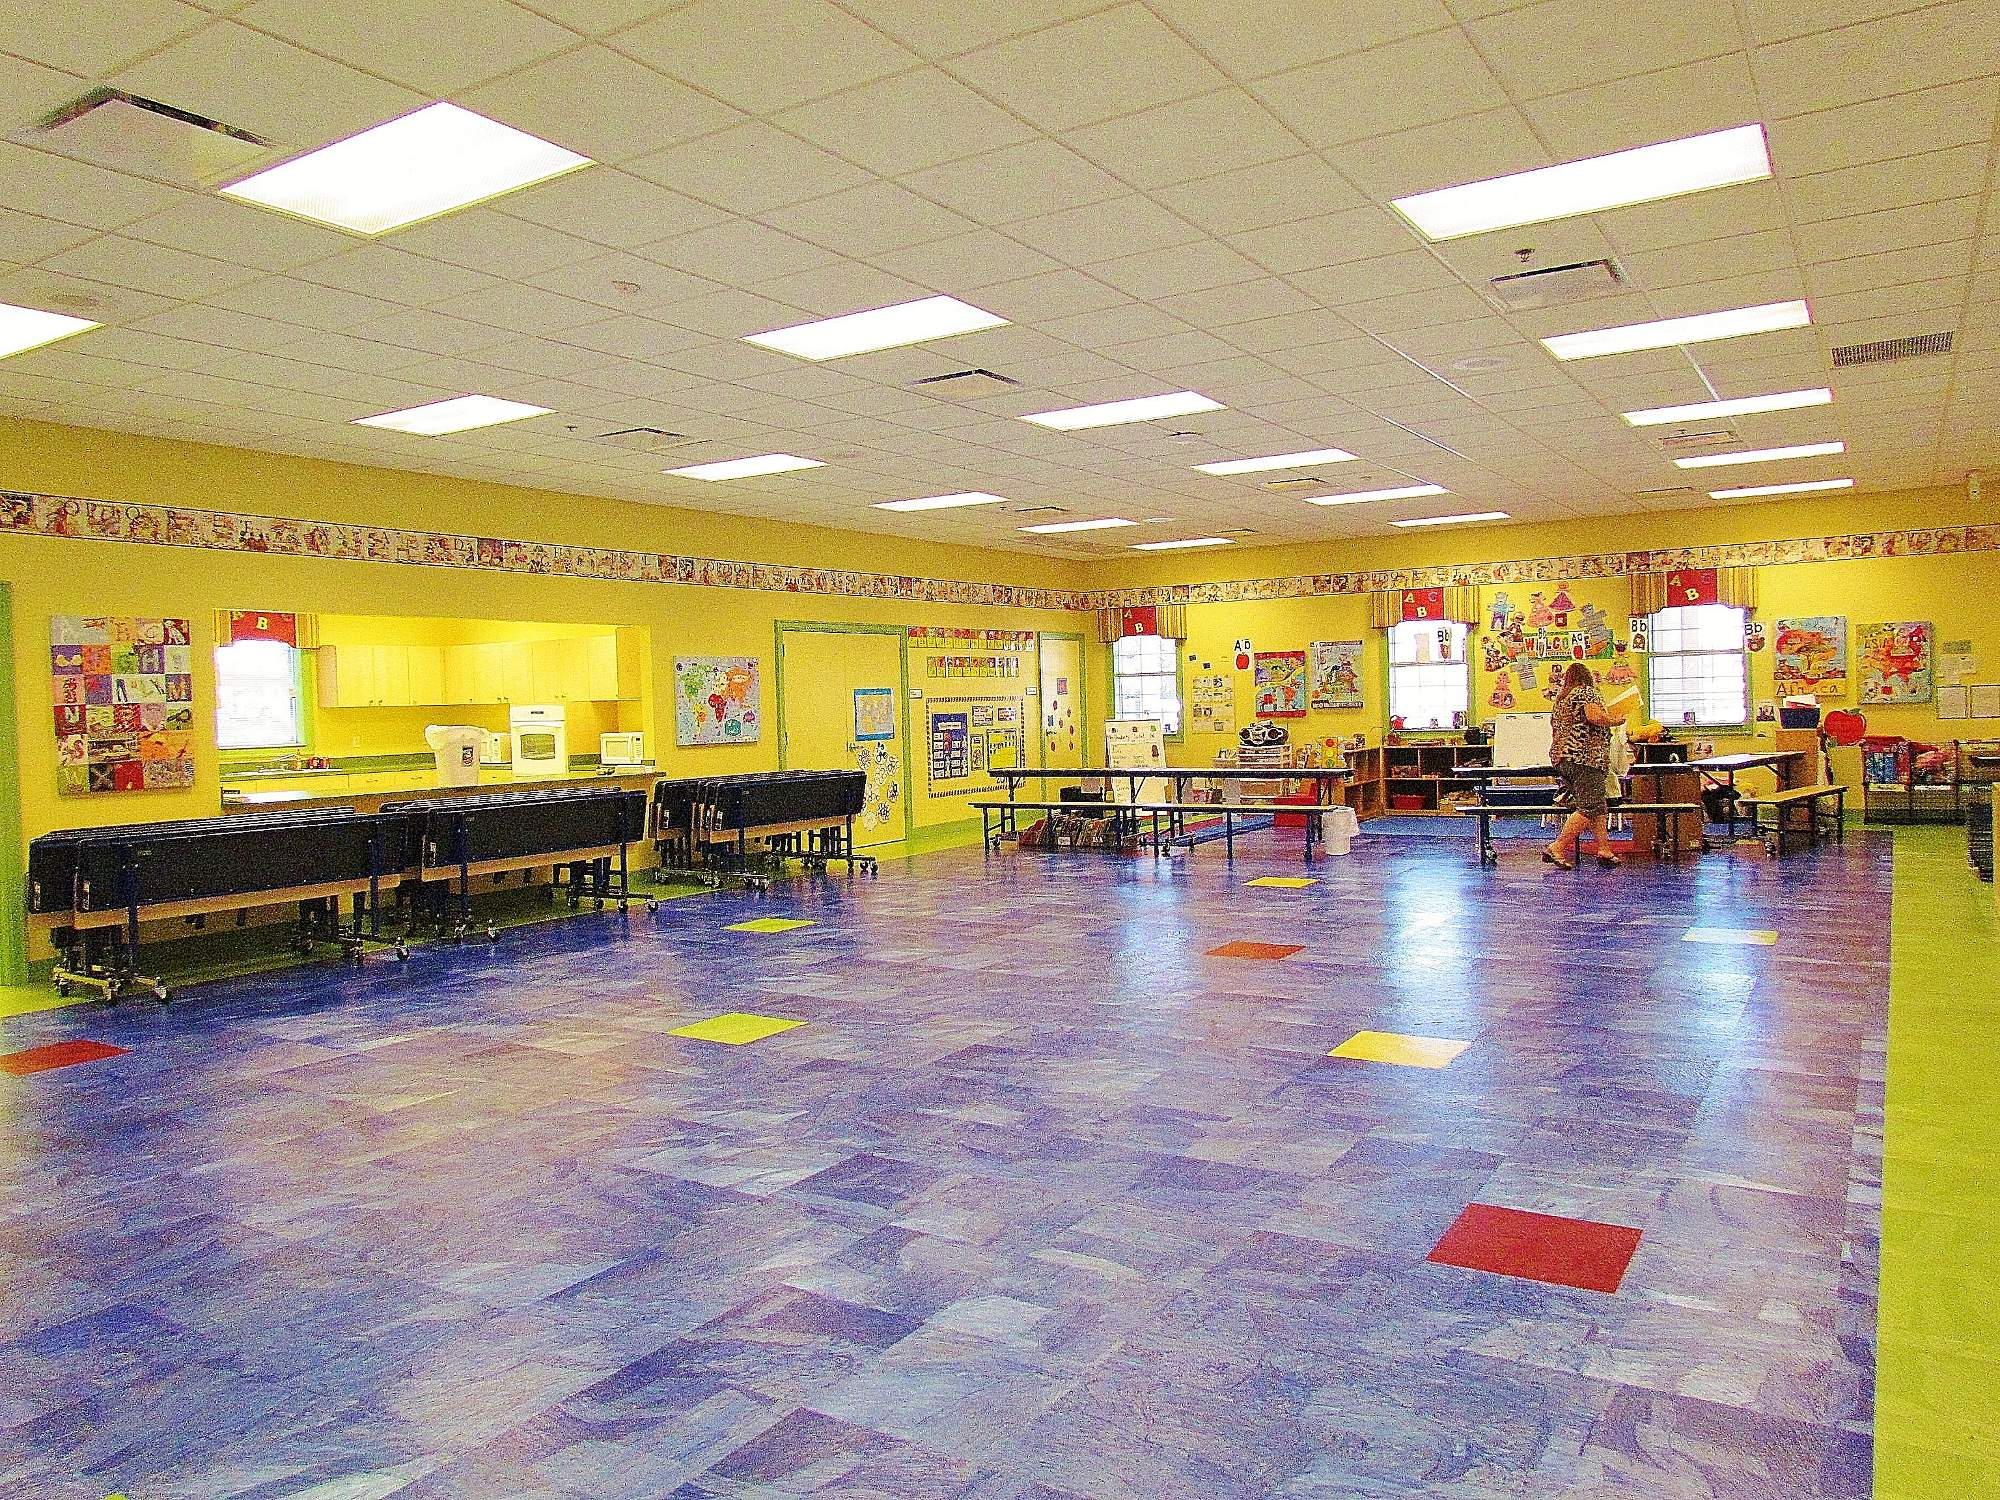 Early Childhood Center image 18 of 18